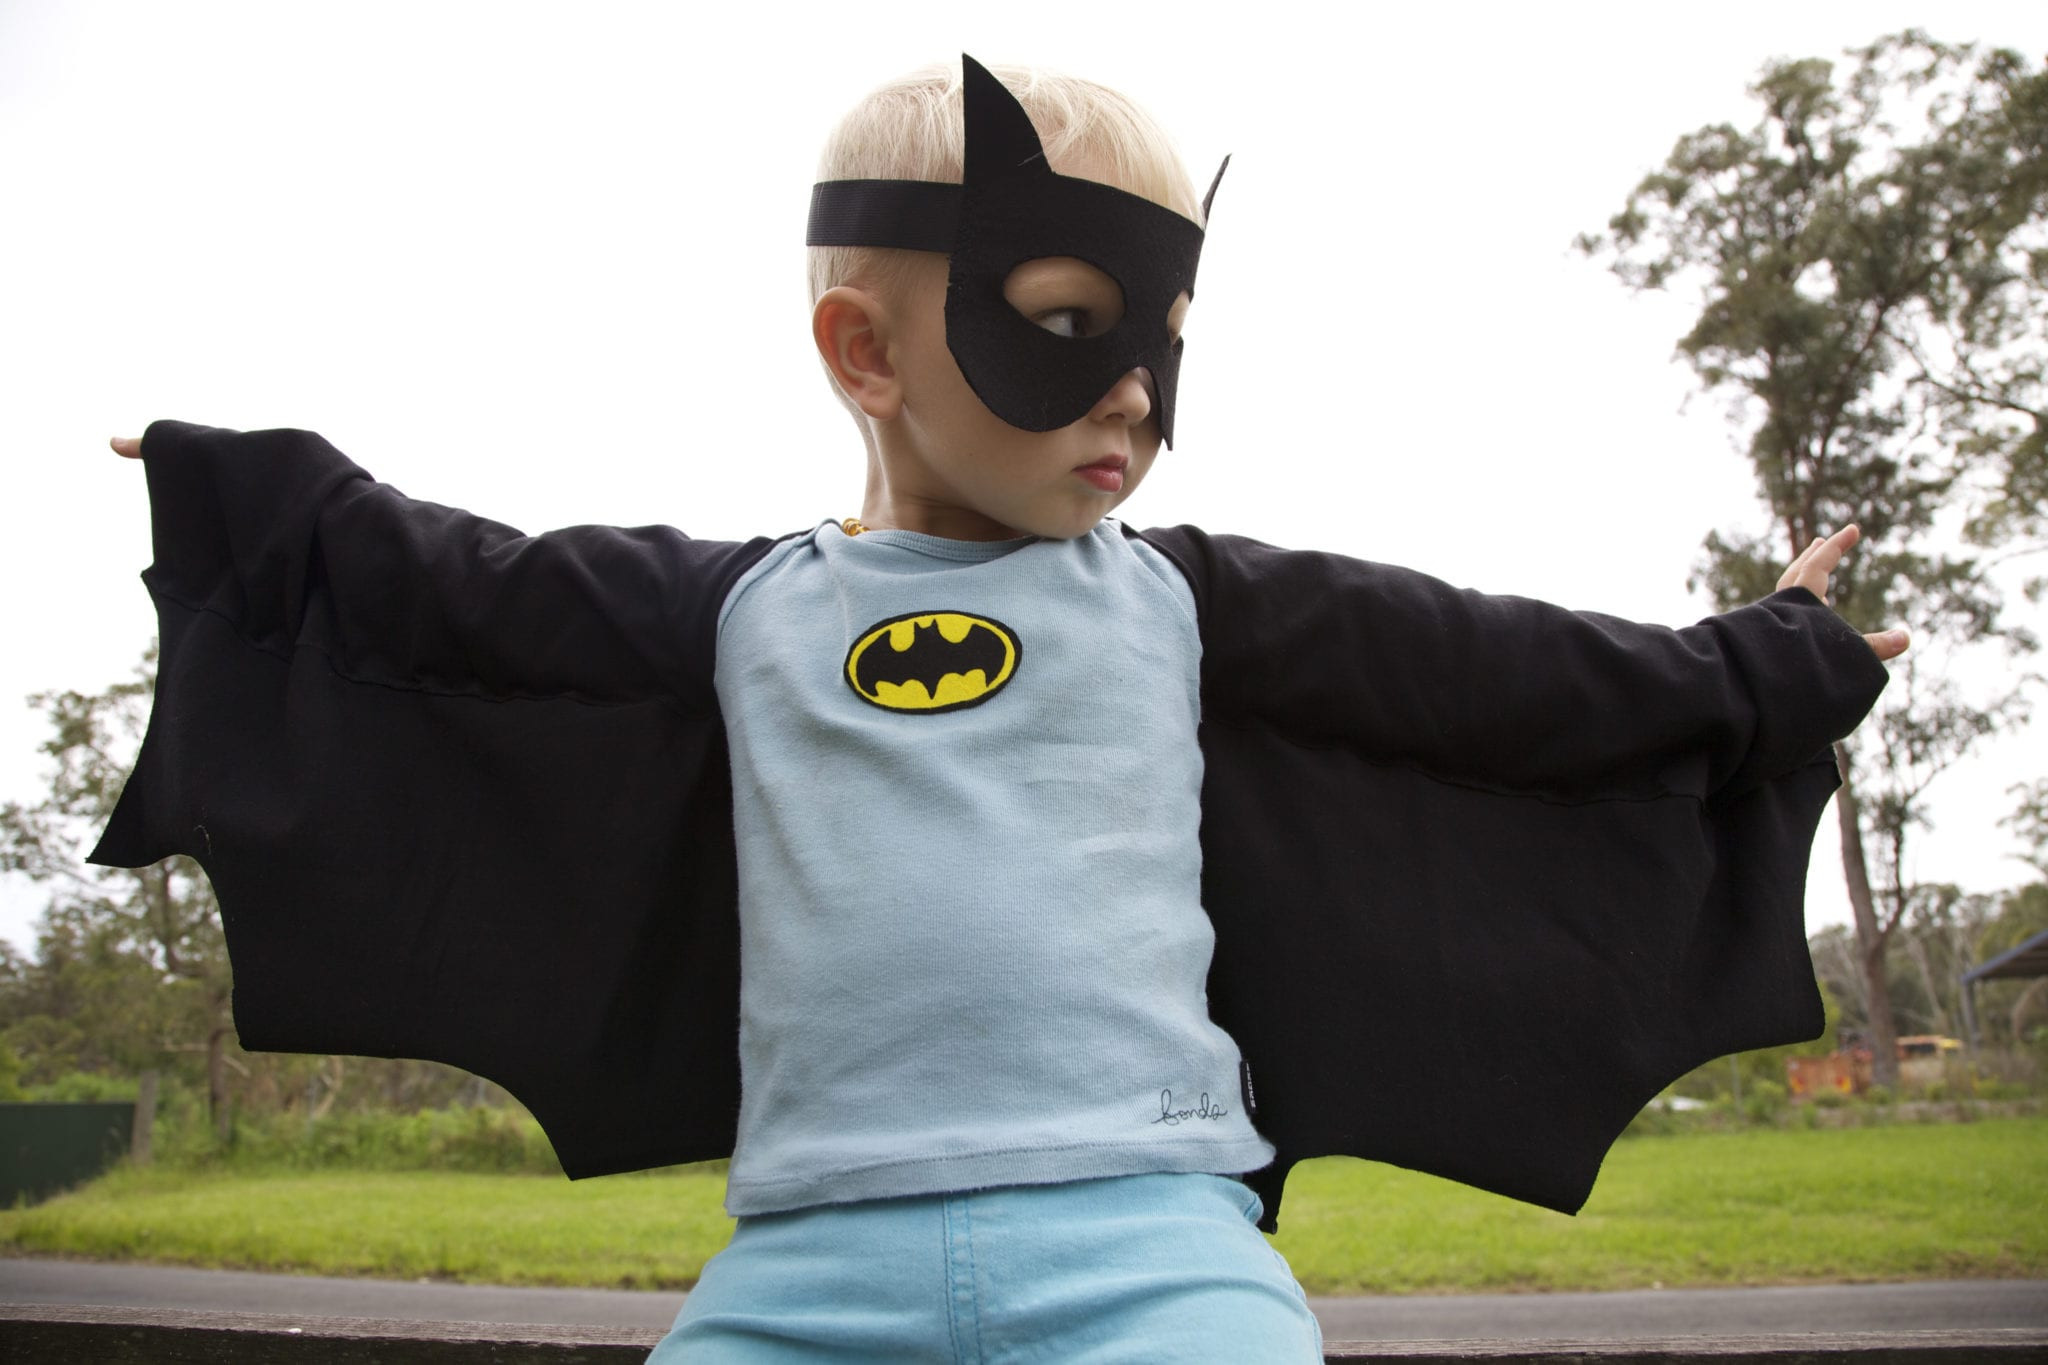 Best ideas about DIY Batman Costume . Save or Pin Homemade Batman Costume Now.